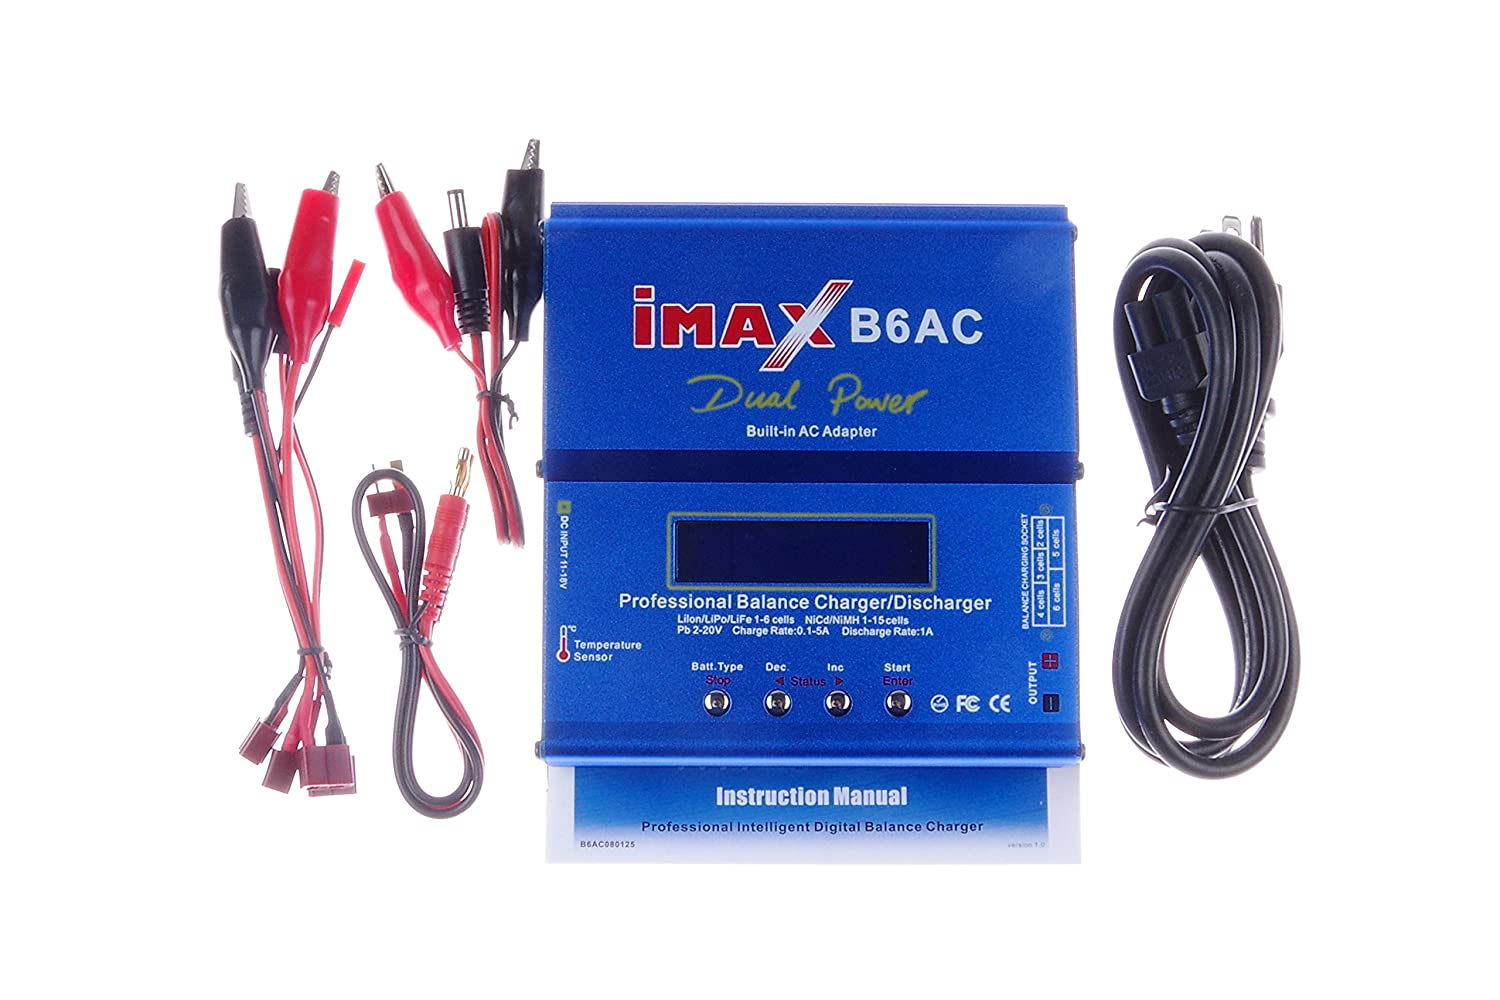 Knacro 80w Imax B6ac Balance Battery Charger B6 Ac Nimh Digital Rc Lipo And Nicd Lithium Discharger With Lcd Screen For